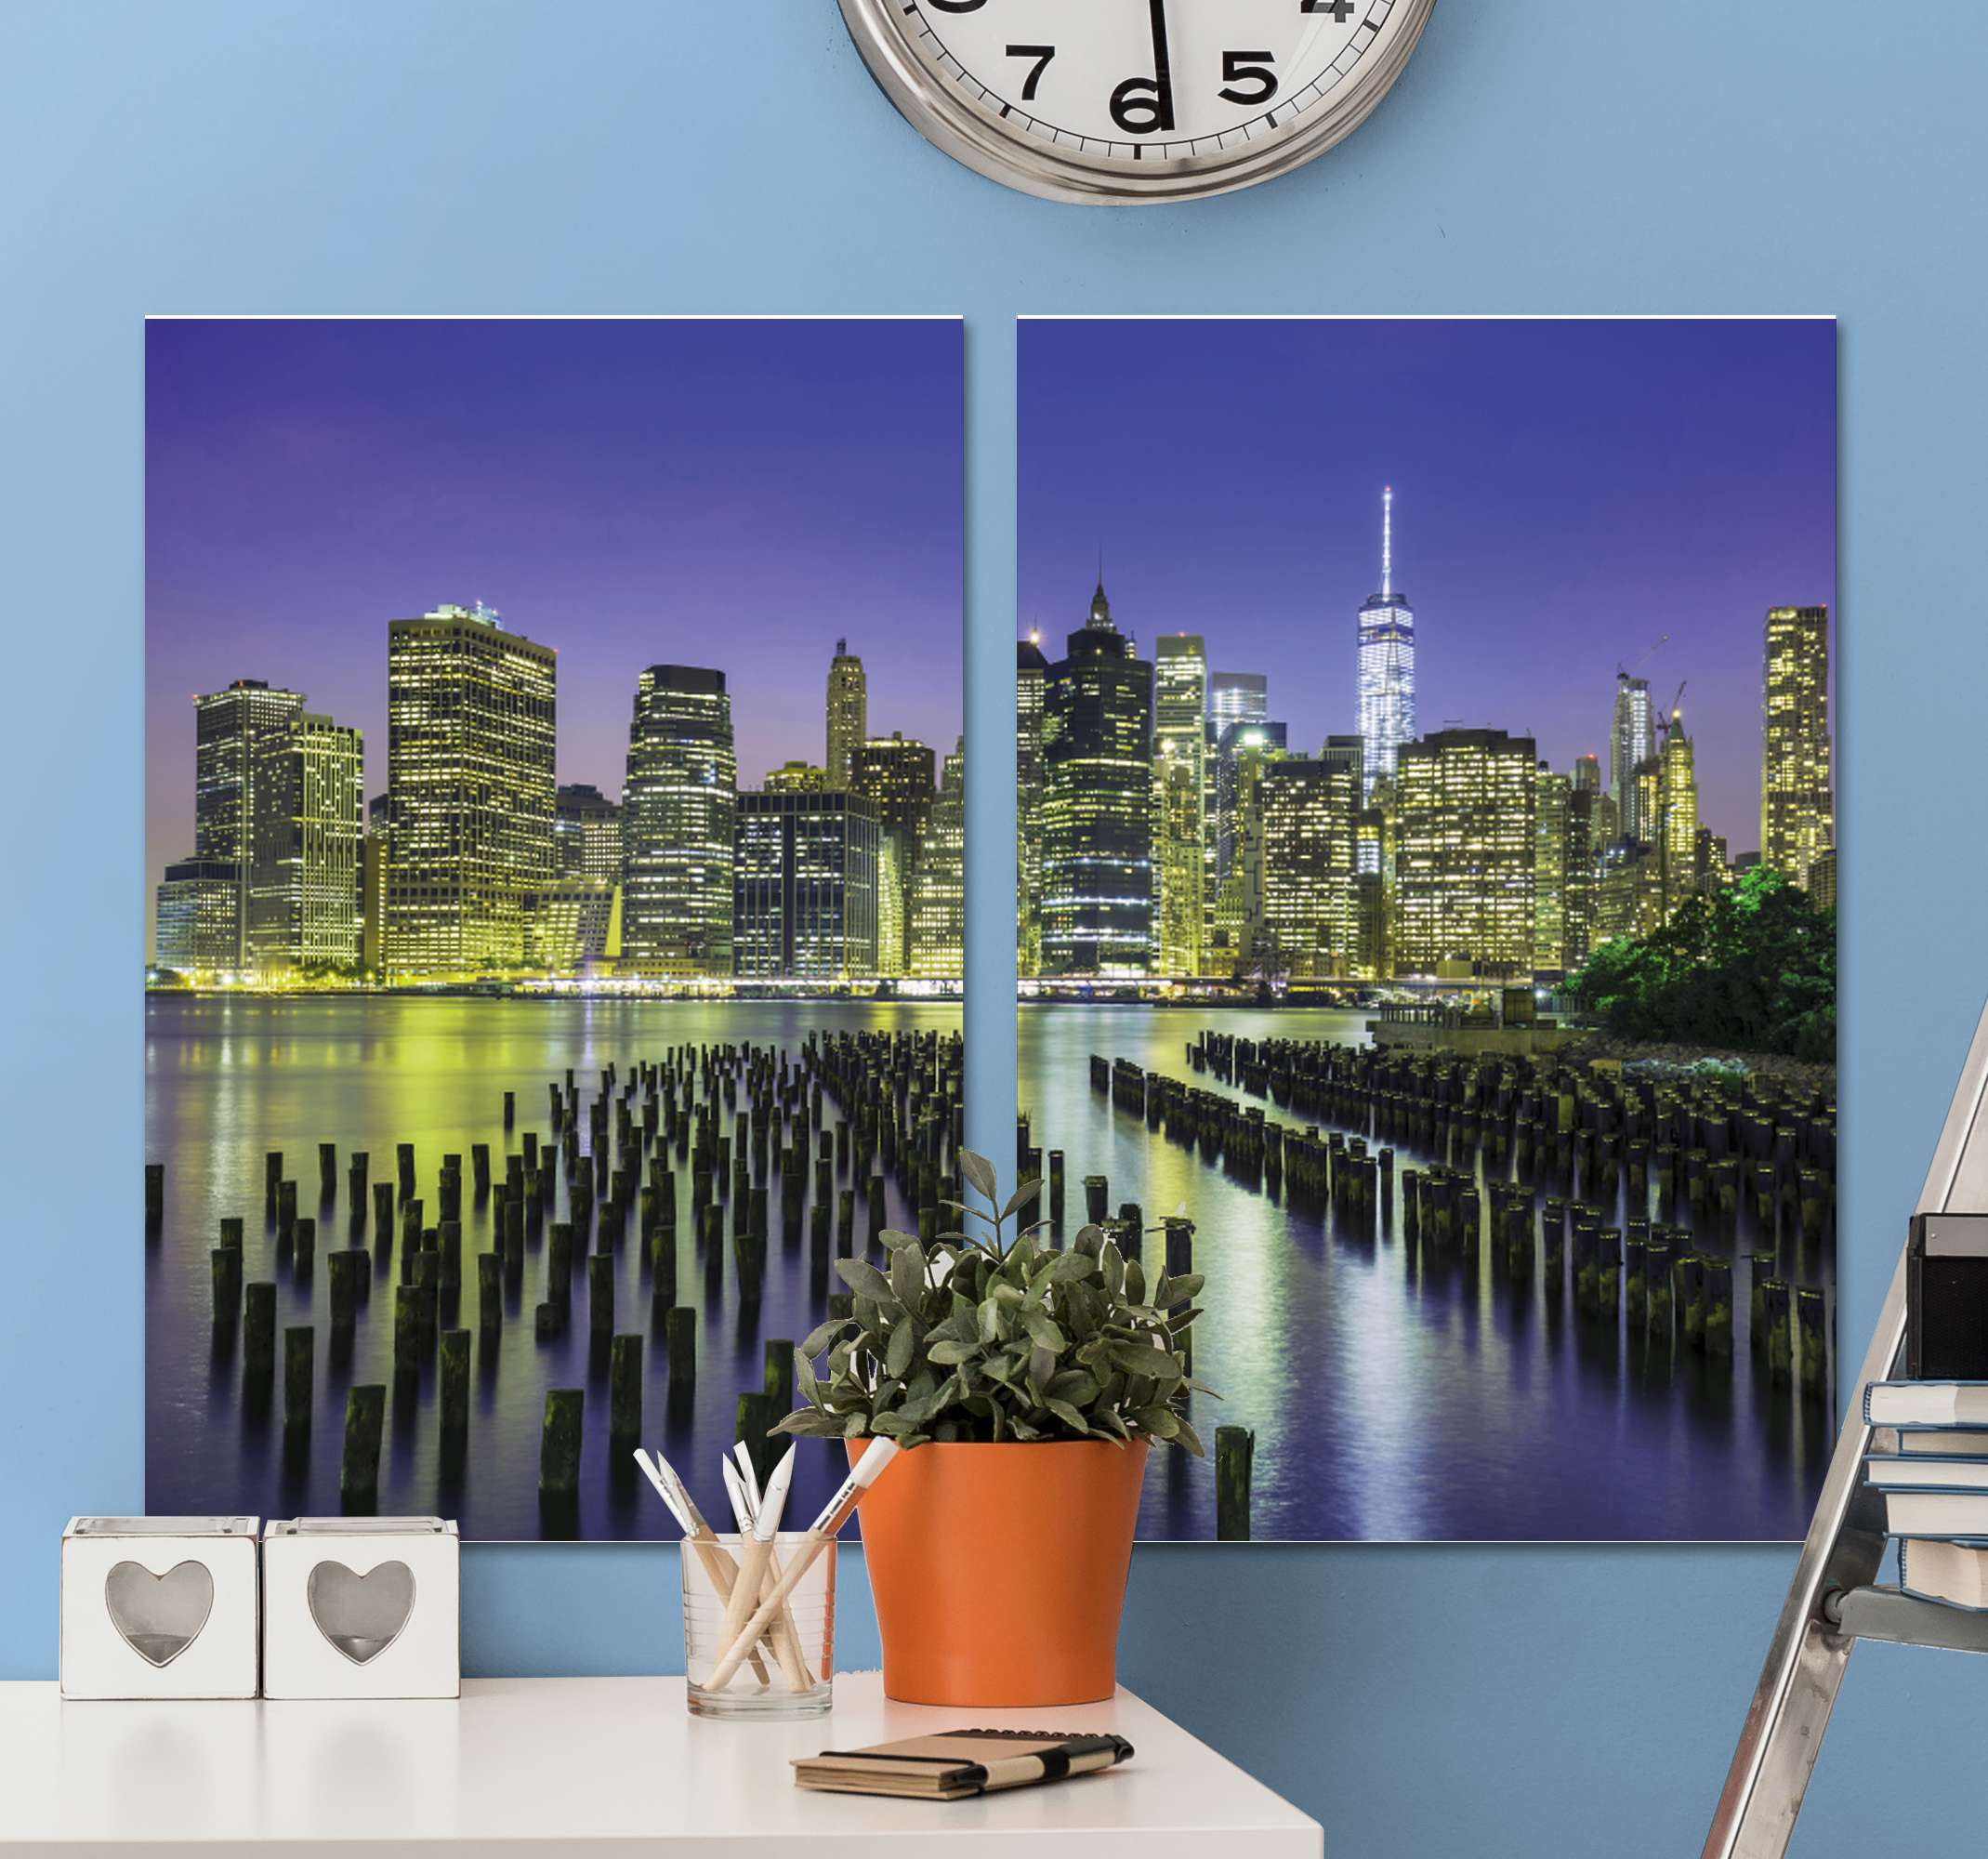 Tenstickers. Manhattan city skyline city skyline utskrifter. Manhattan city skyline city canvas prints för att försköna ditt hem med ett modernt och lyxigt utseende. Två canvasses med 3d vy av manhattan city på natten.